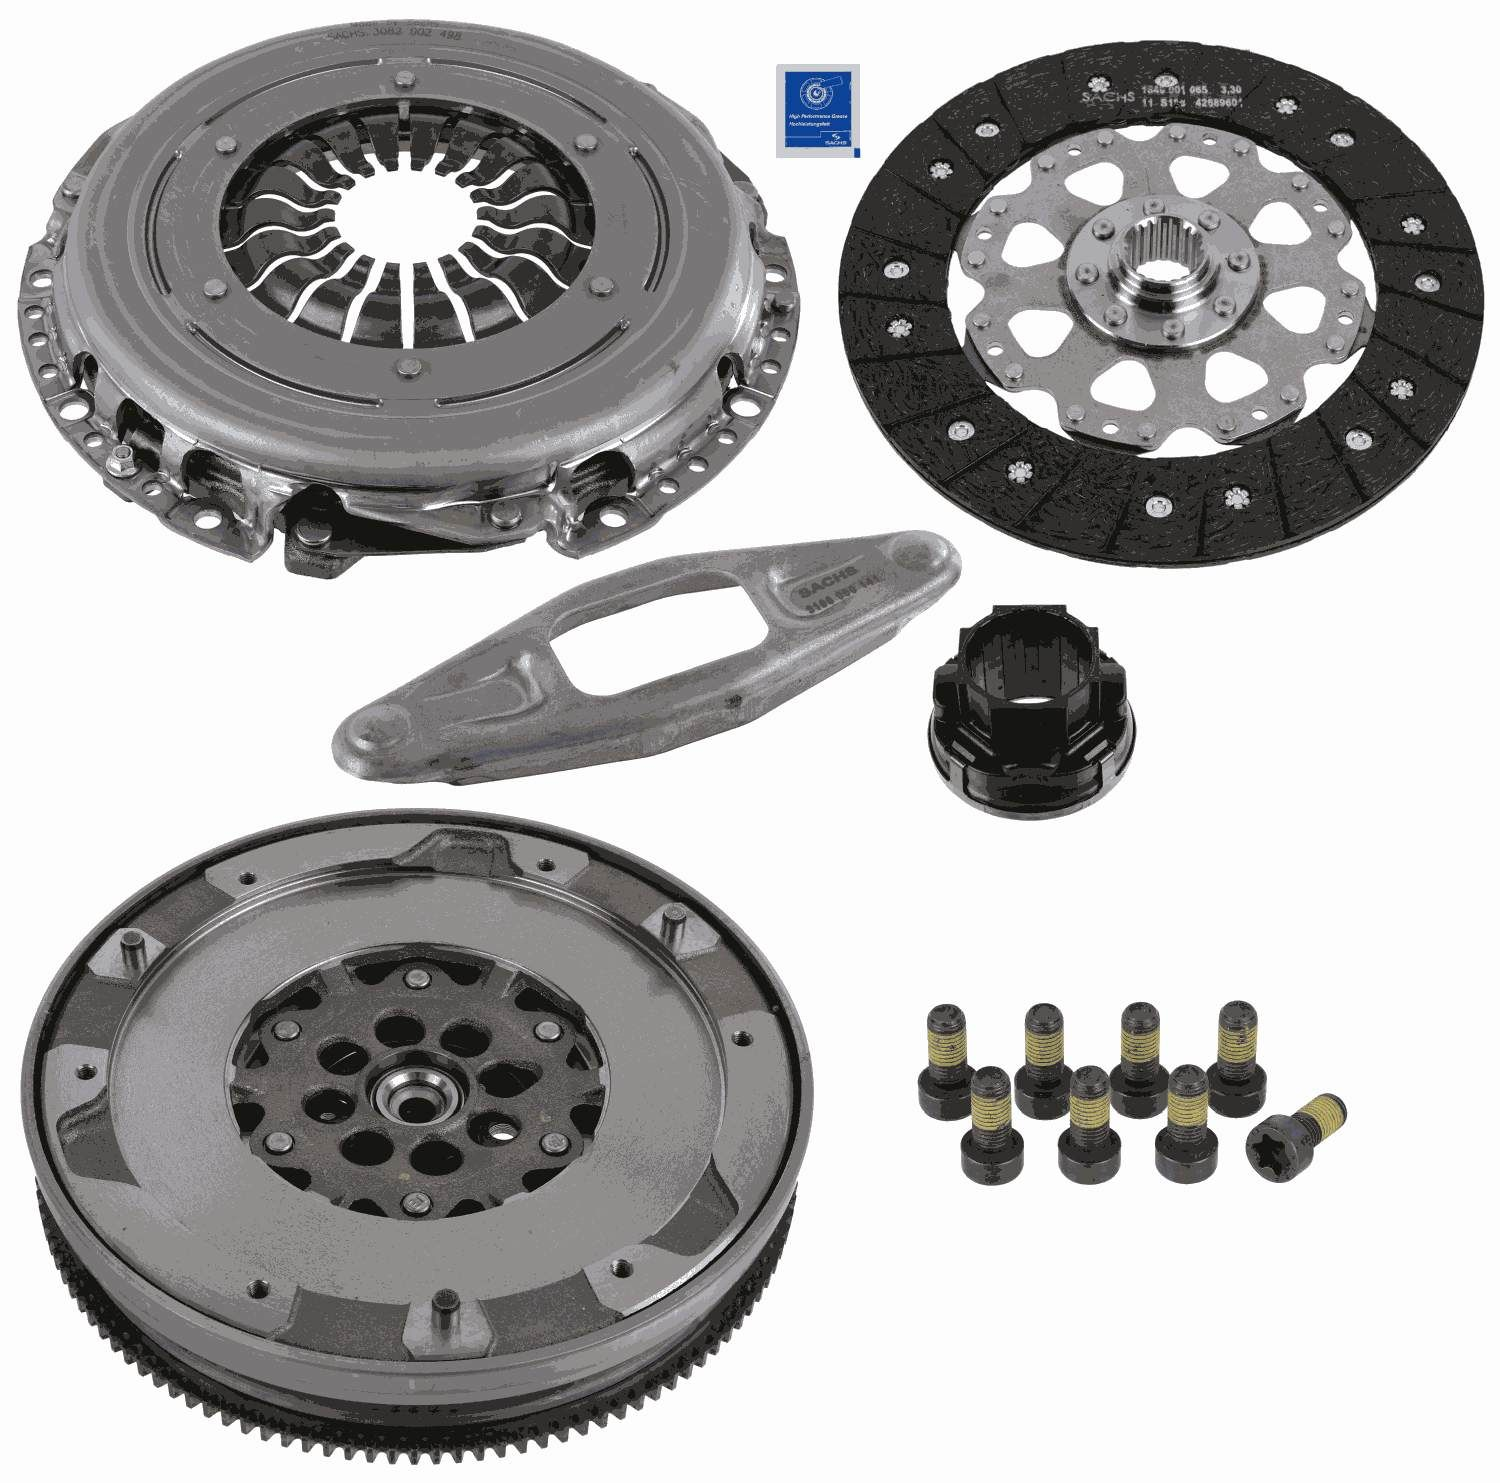 BMW 2 Series 2014 Clutch kit SACHS 2290 601 148: with clutch pressure plate, with double-mass flywheel, with clutch disc, with clutch release bearing